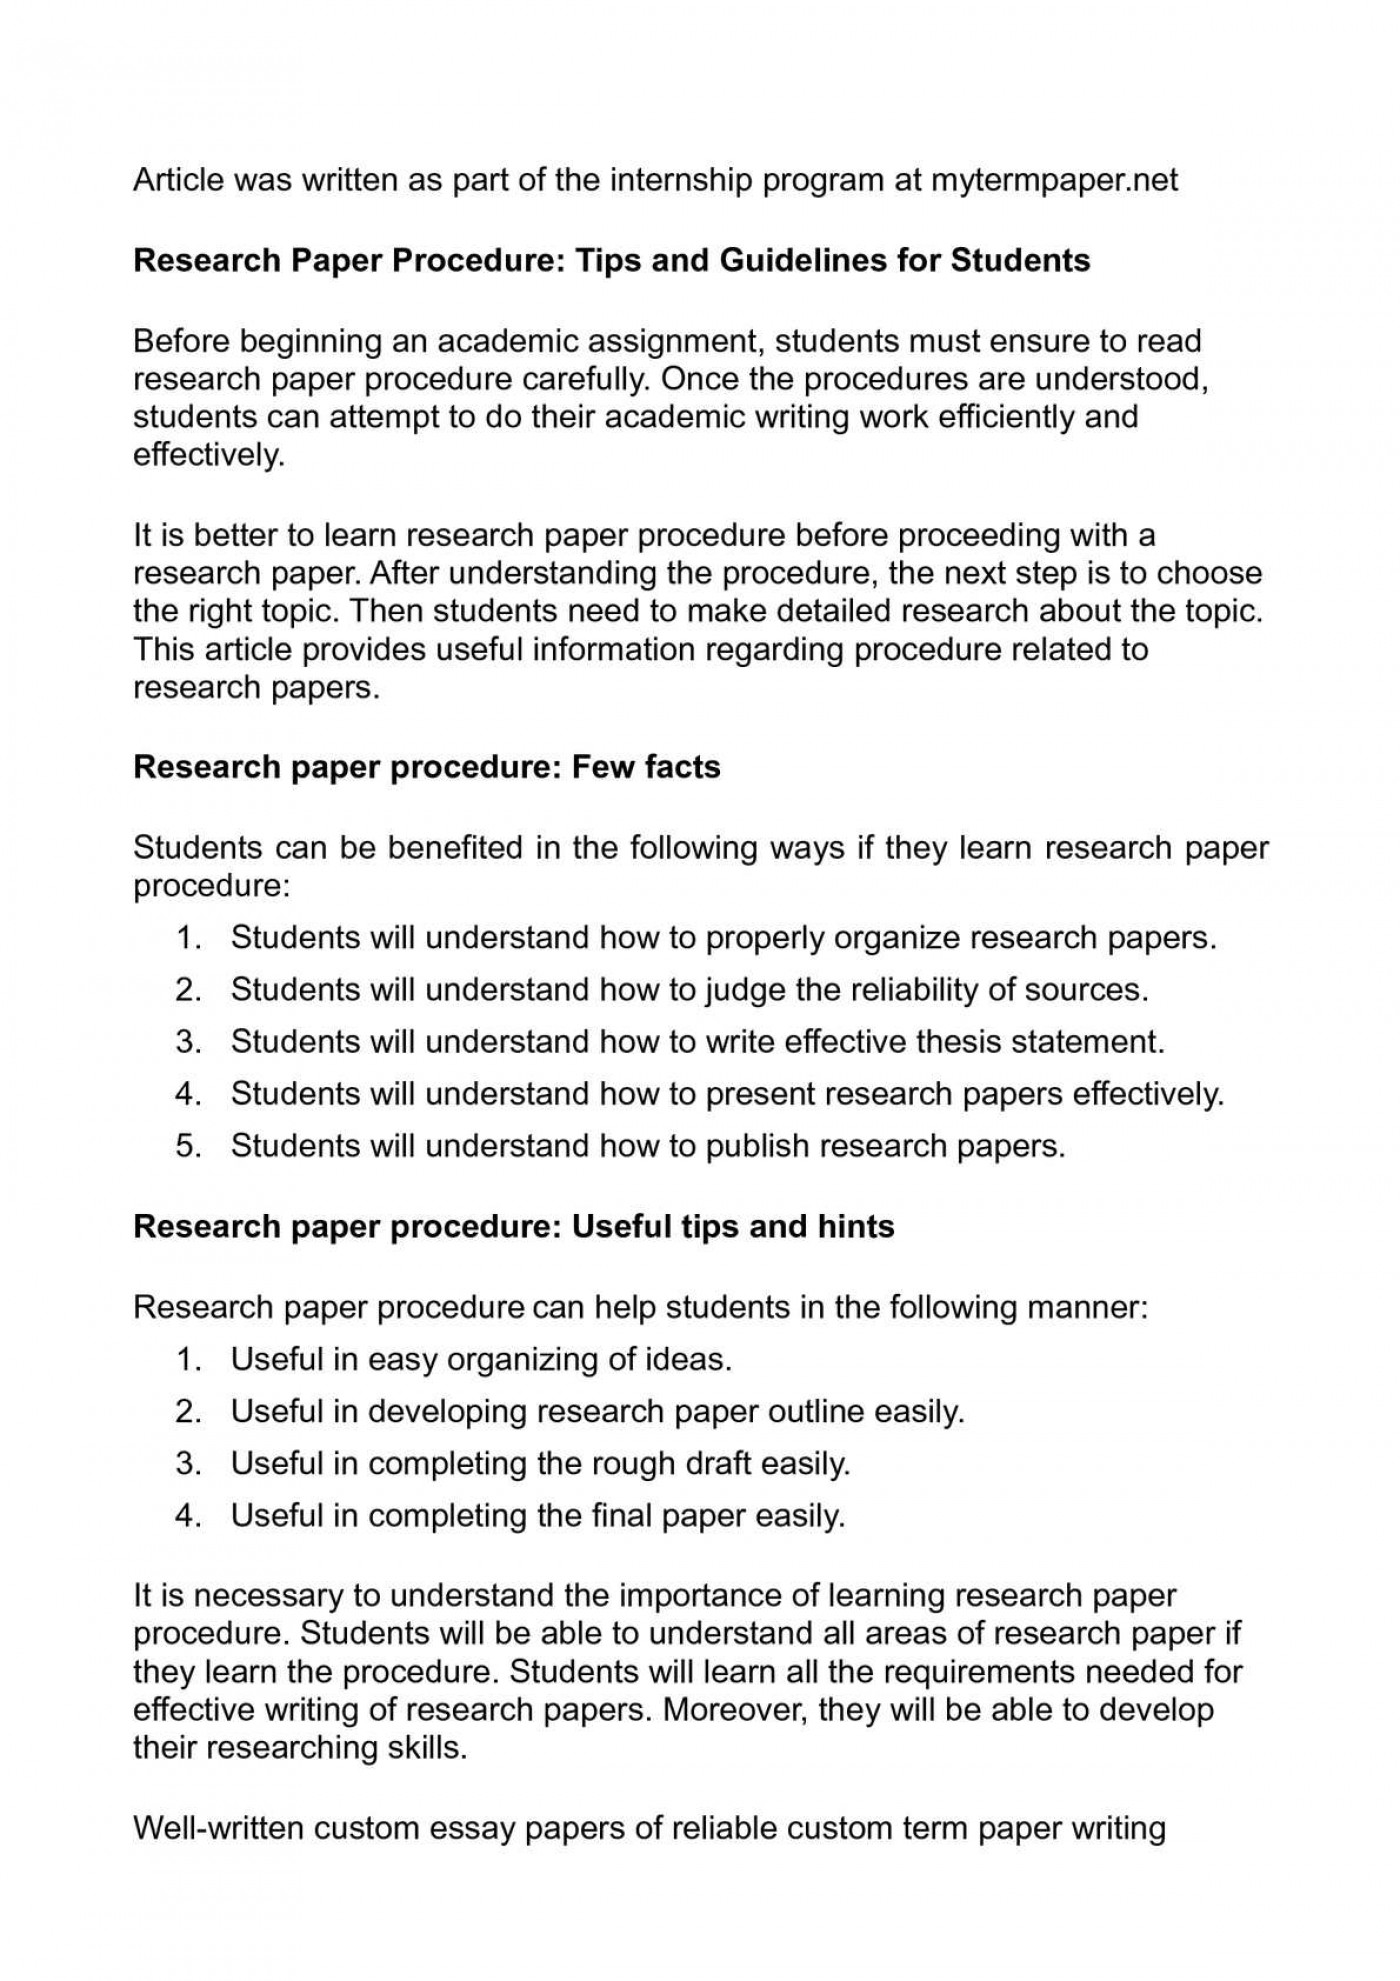 008 Developing Research Paper Outline Singular A 1400